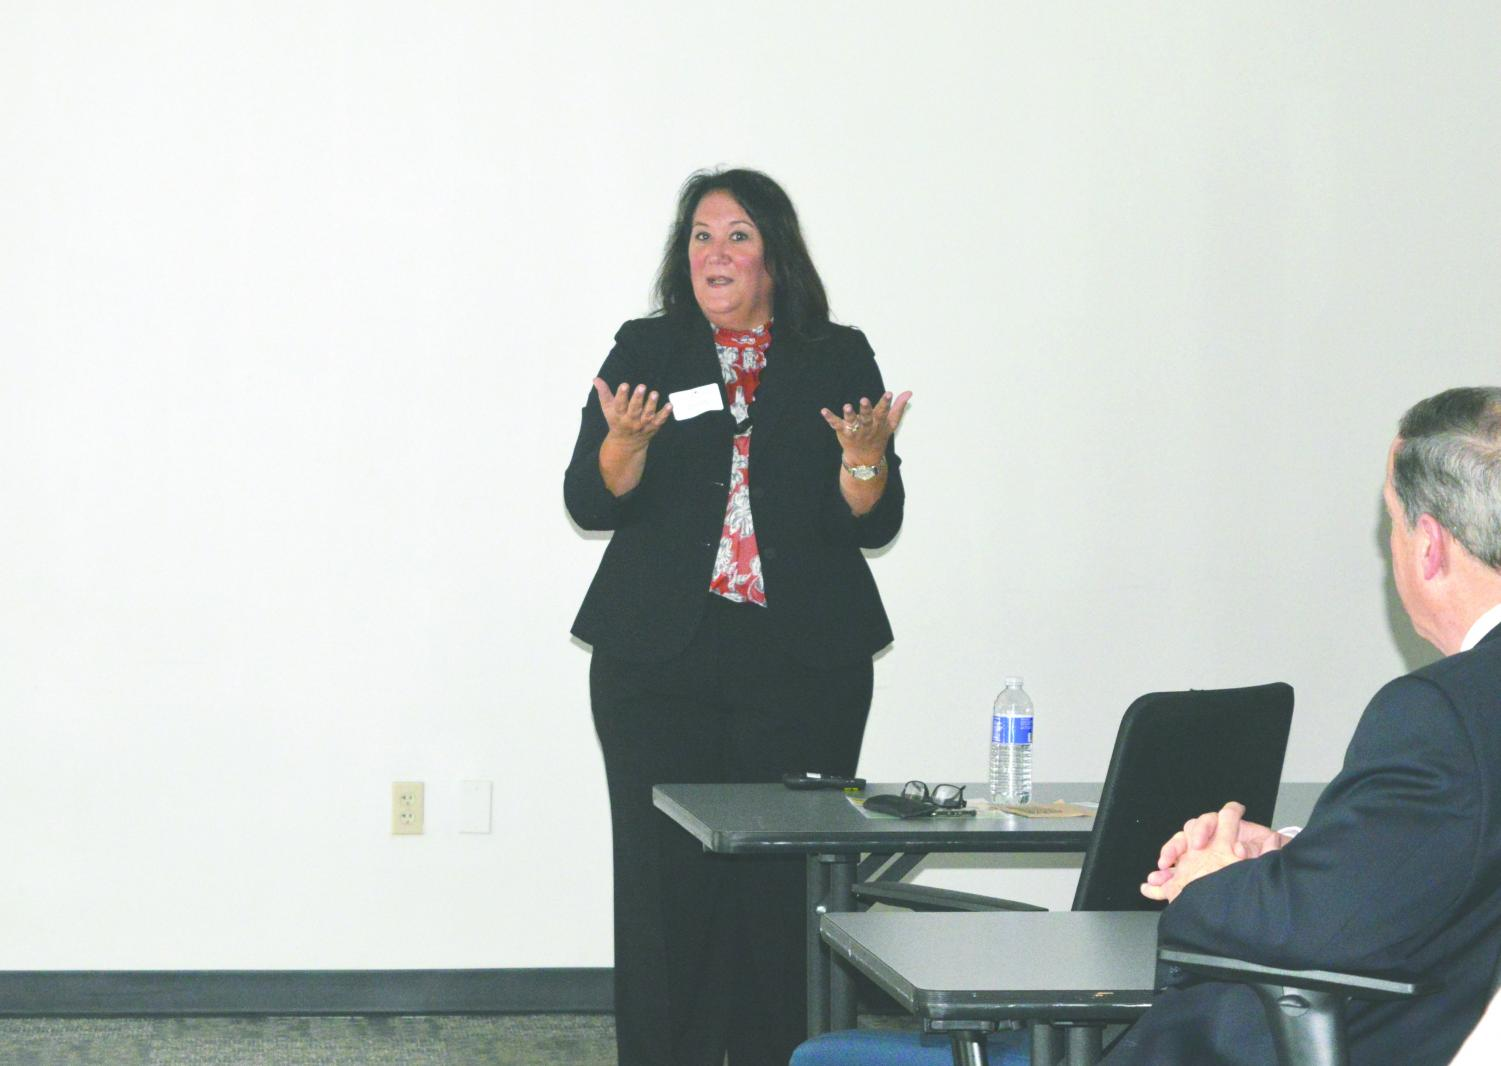 Kimberly Wylam, of the Family Business Alliance, discussed the building of a successful sexual harassment policy in the workplace.